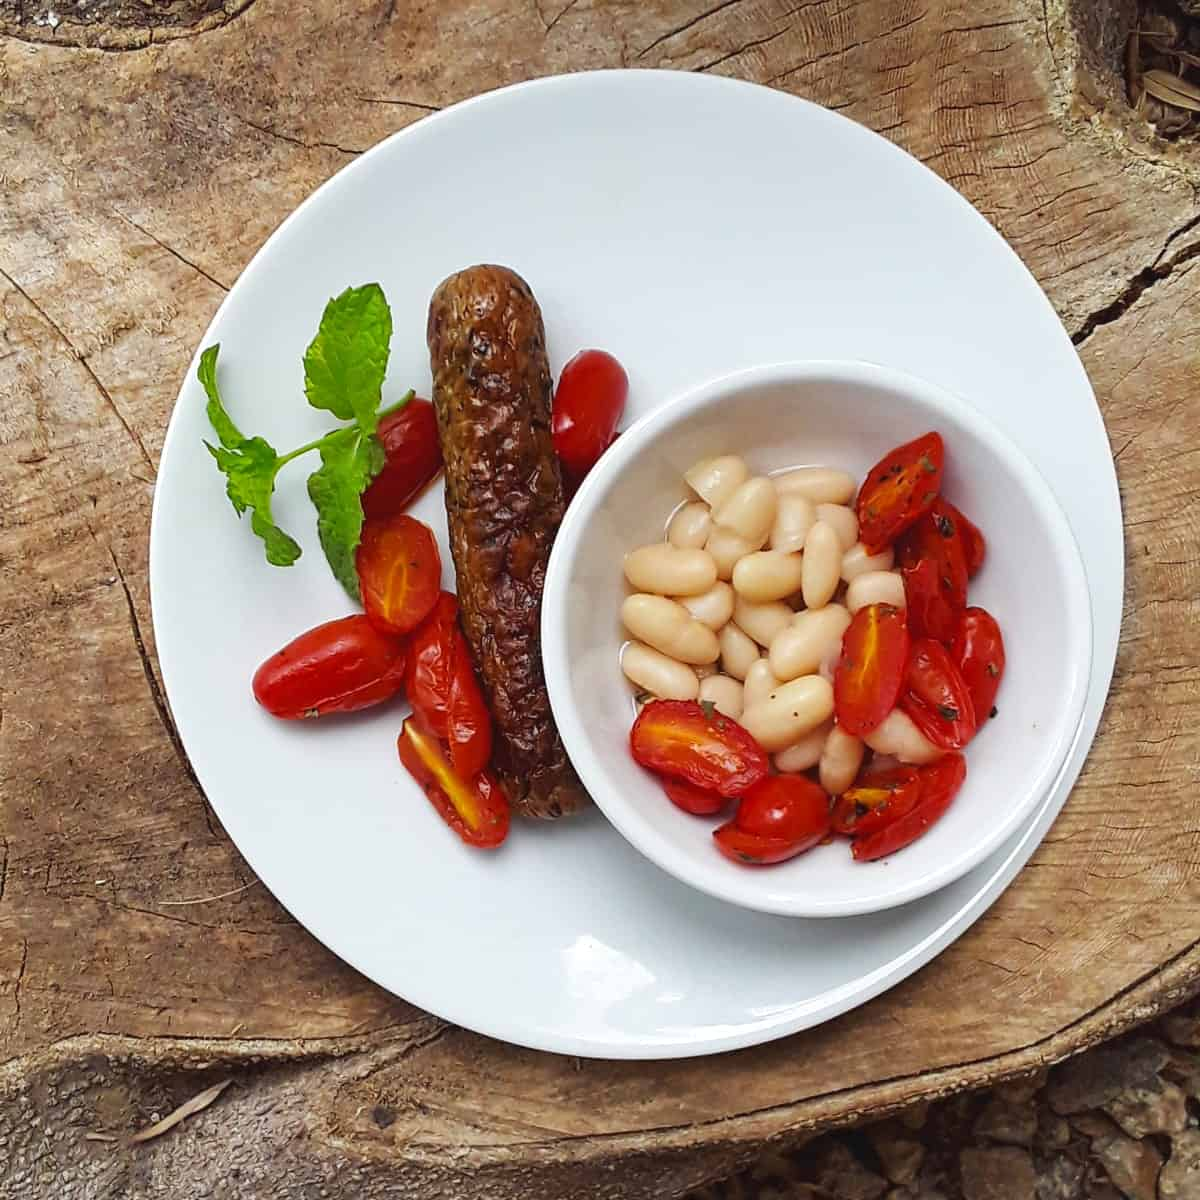 Spicy sausage with tomatoes and side of white beans on white plate.